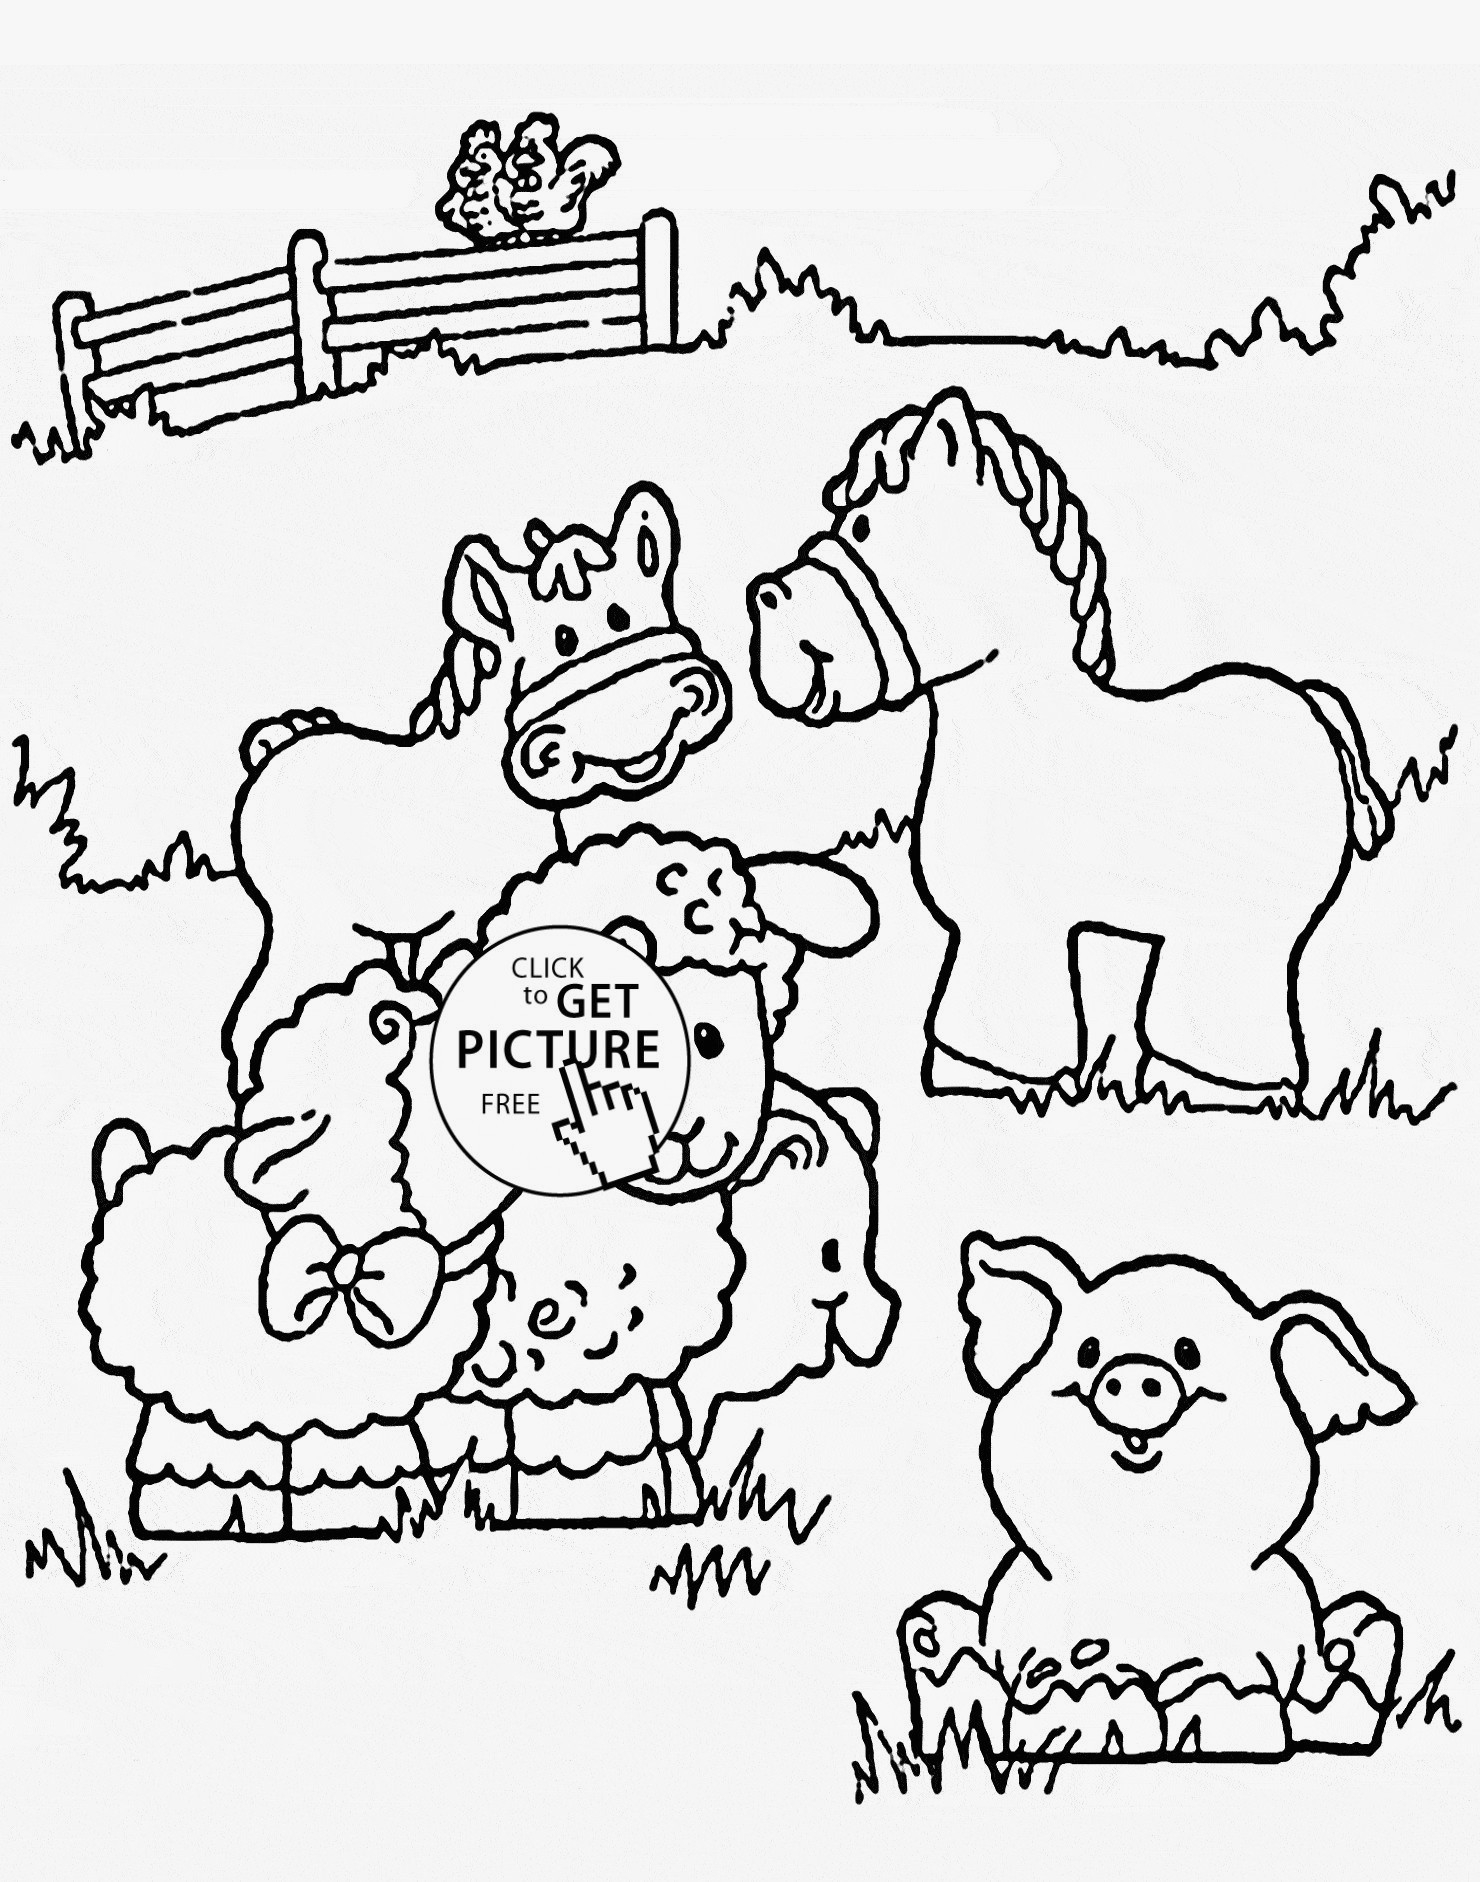 Zoo Animals Coloring Pages Coloring Pages For Zoo Animals For Preschool To Print 20 Stunning